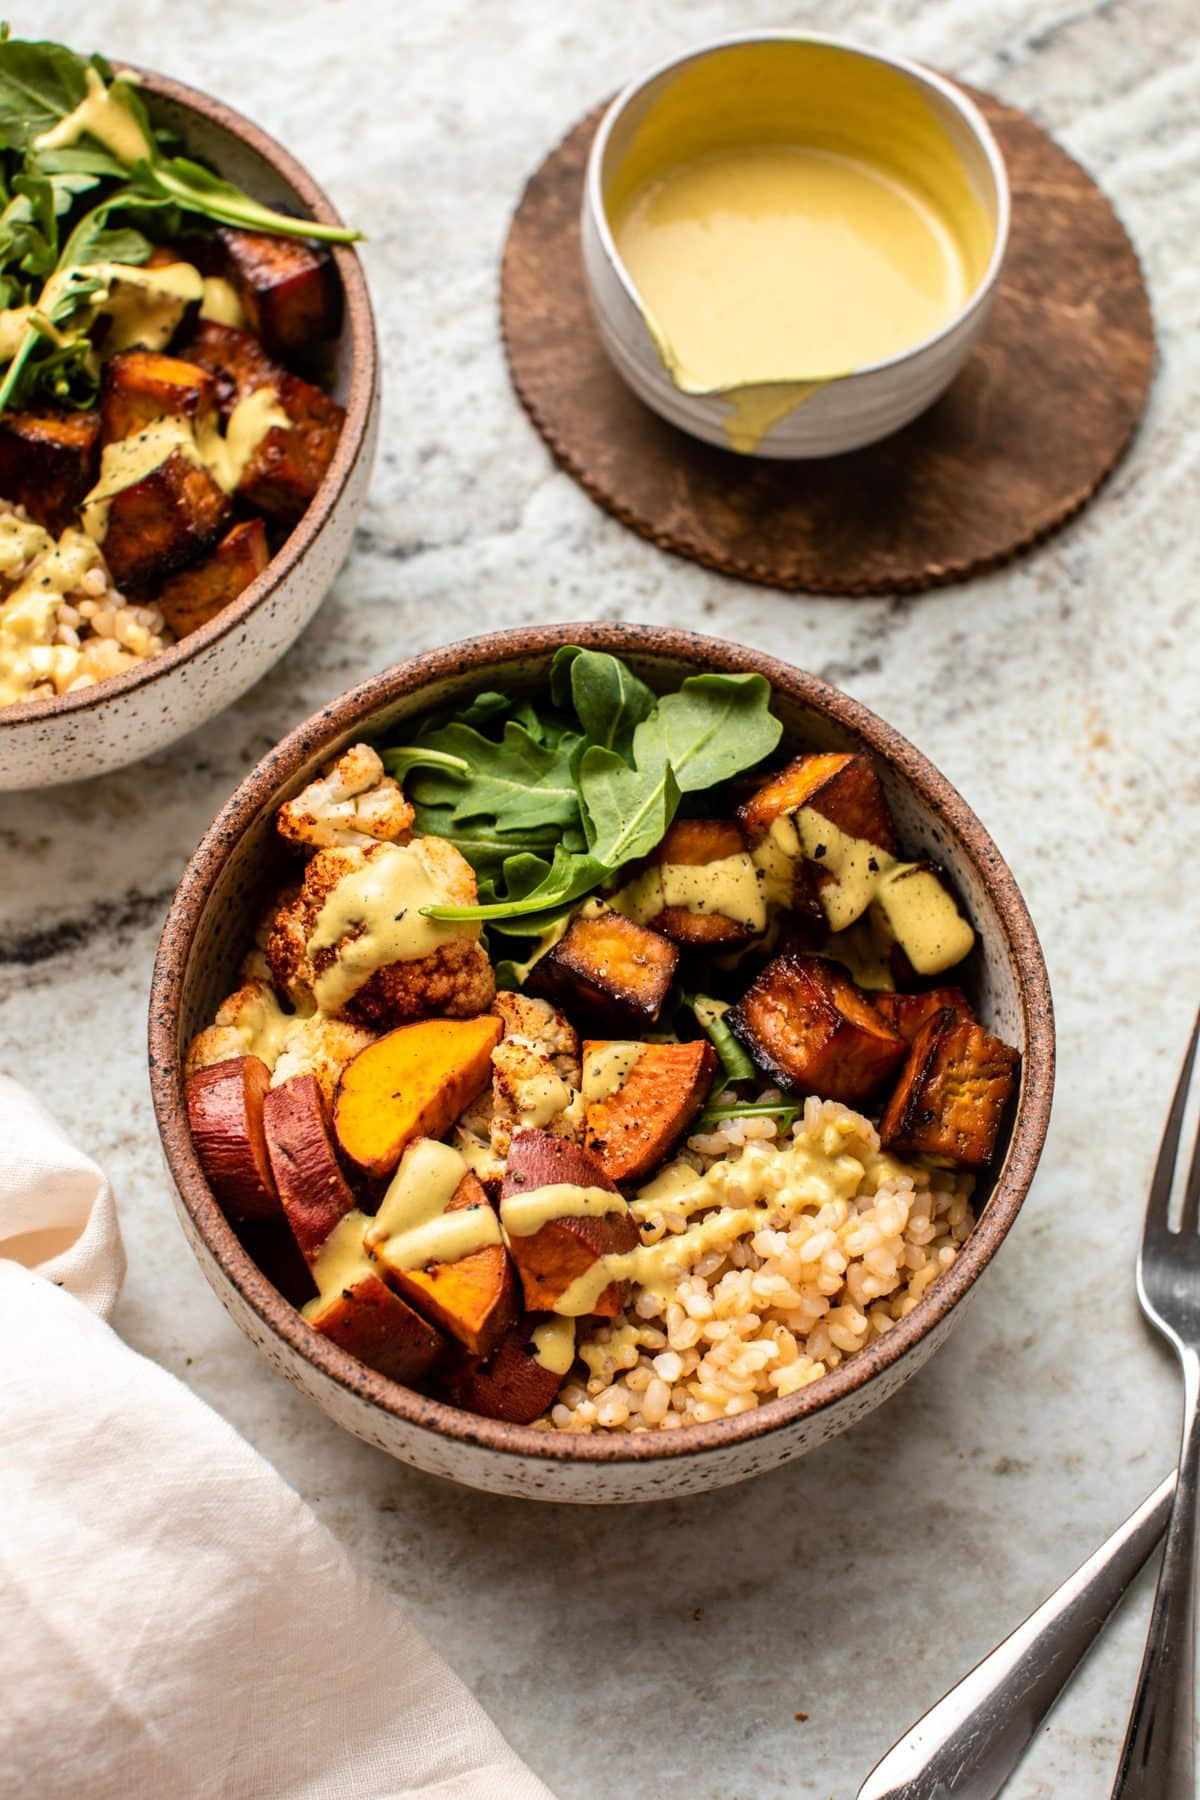 Photos of two nourish bowls and a small bowl of dressing off to the side